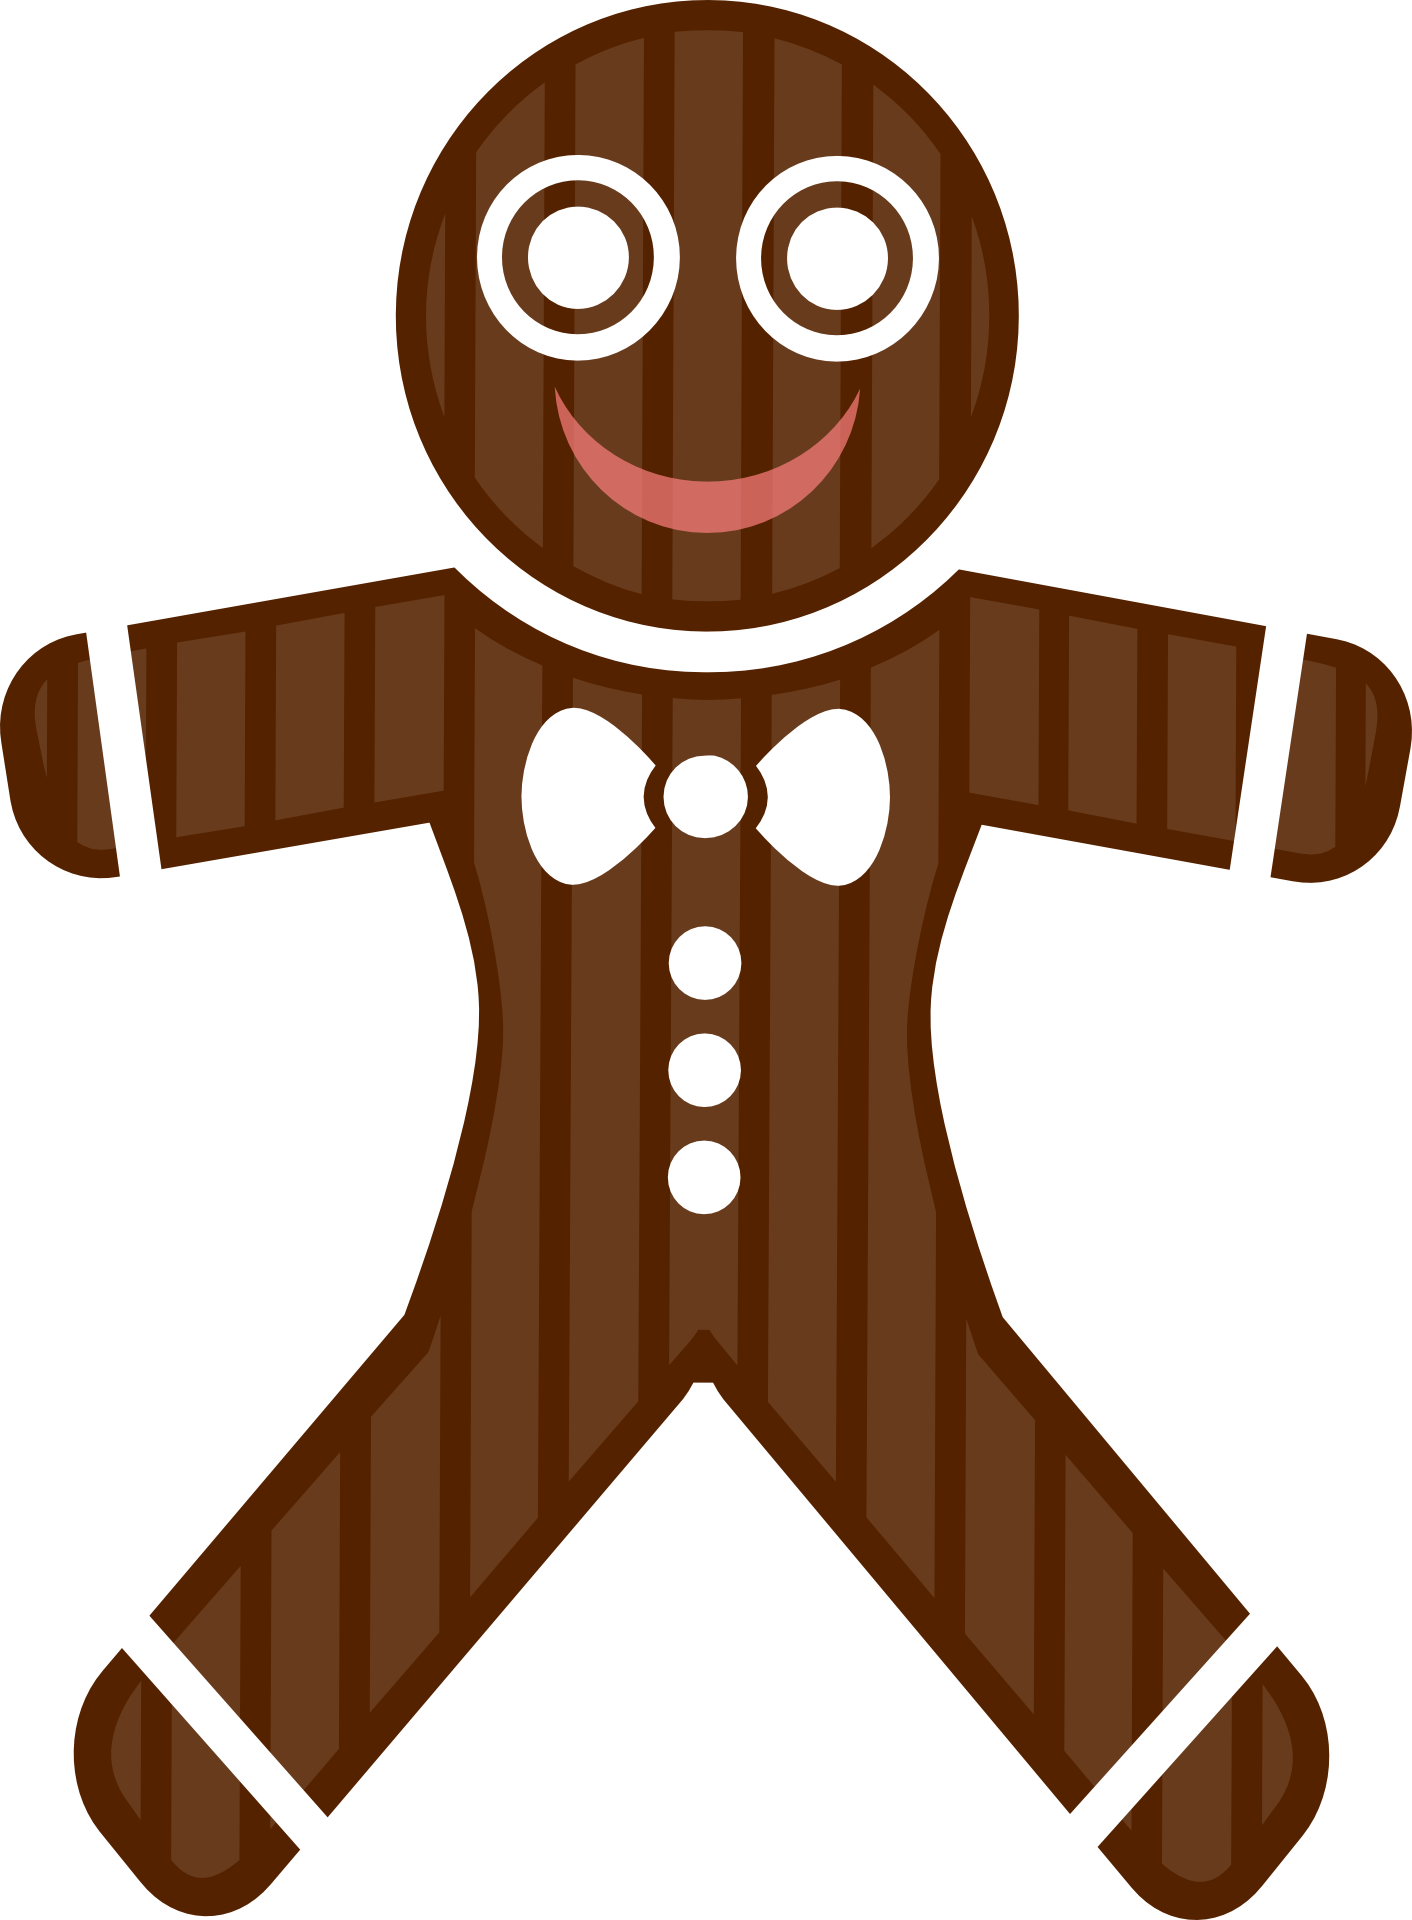 1412x1920 Gingerbread House Candy Cane Christmas Pudding Clip Art